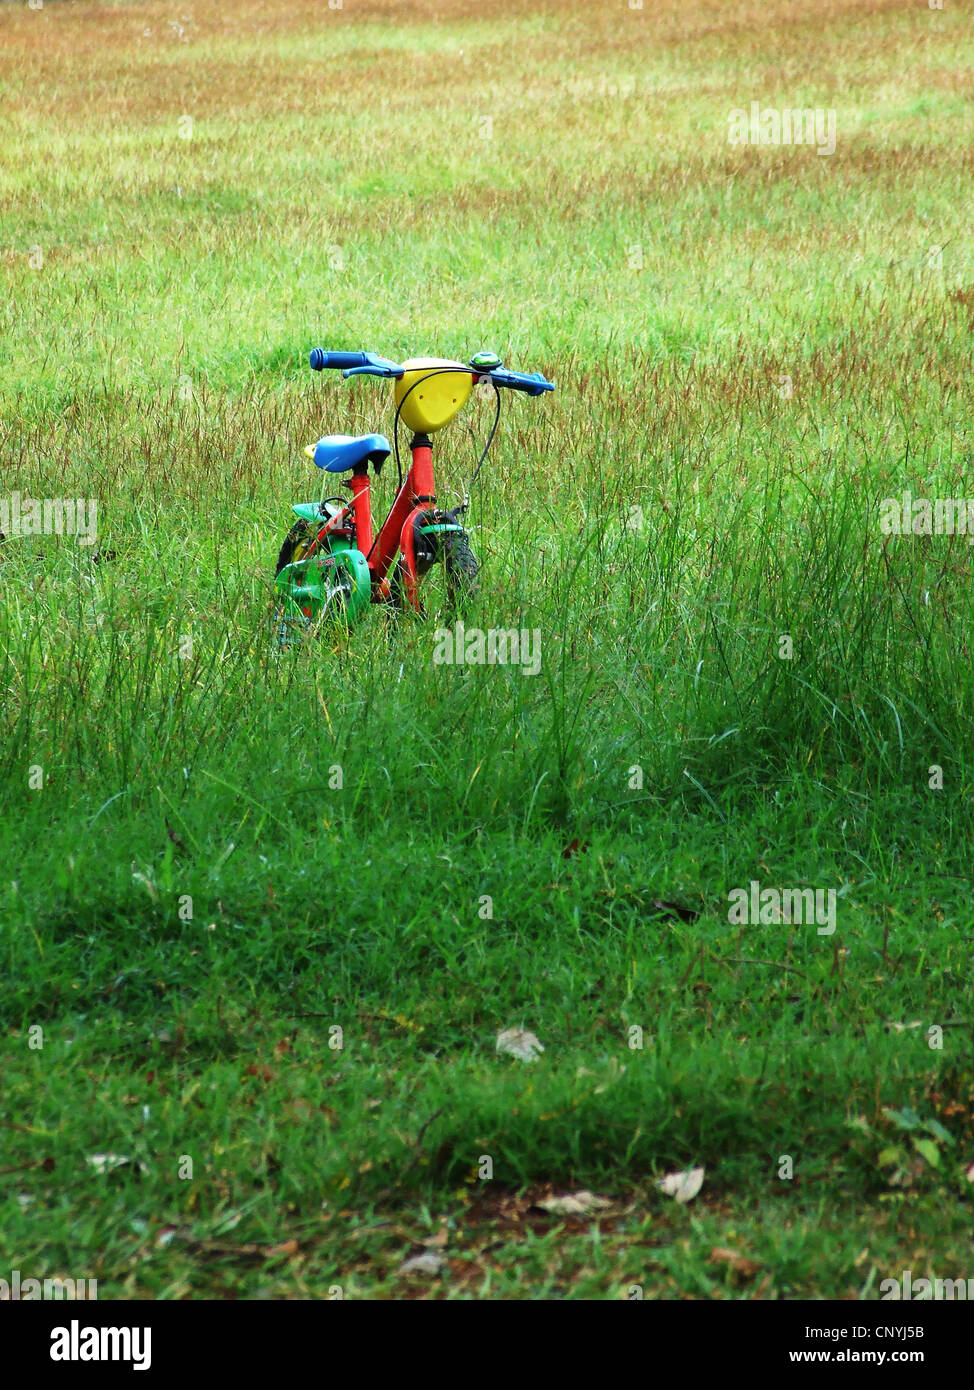 A child's bicycle - Stock Image